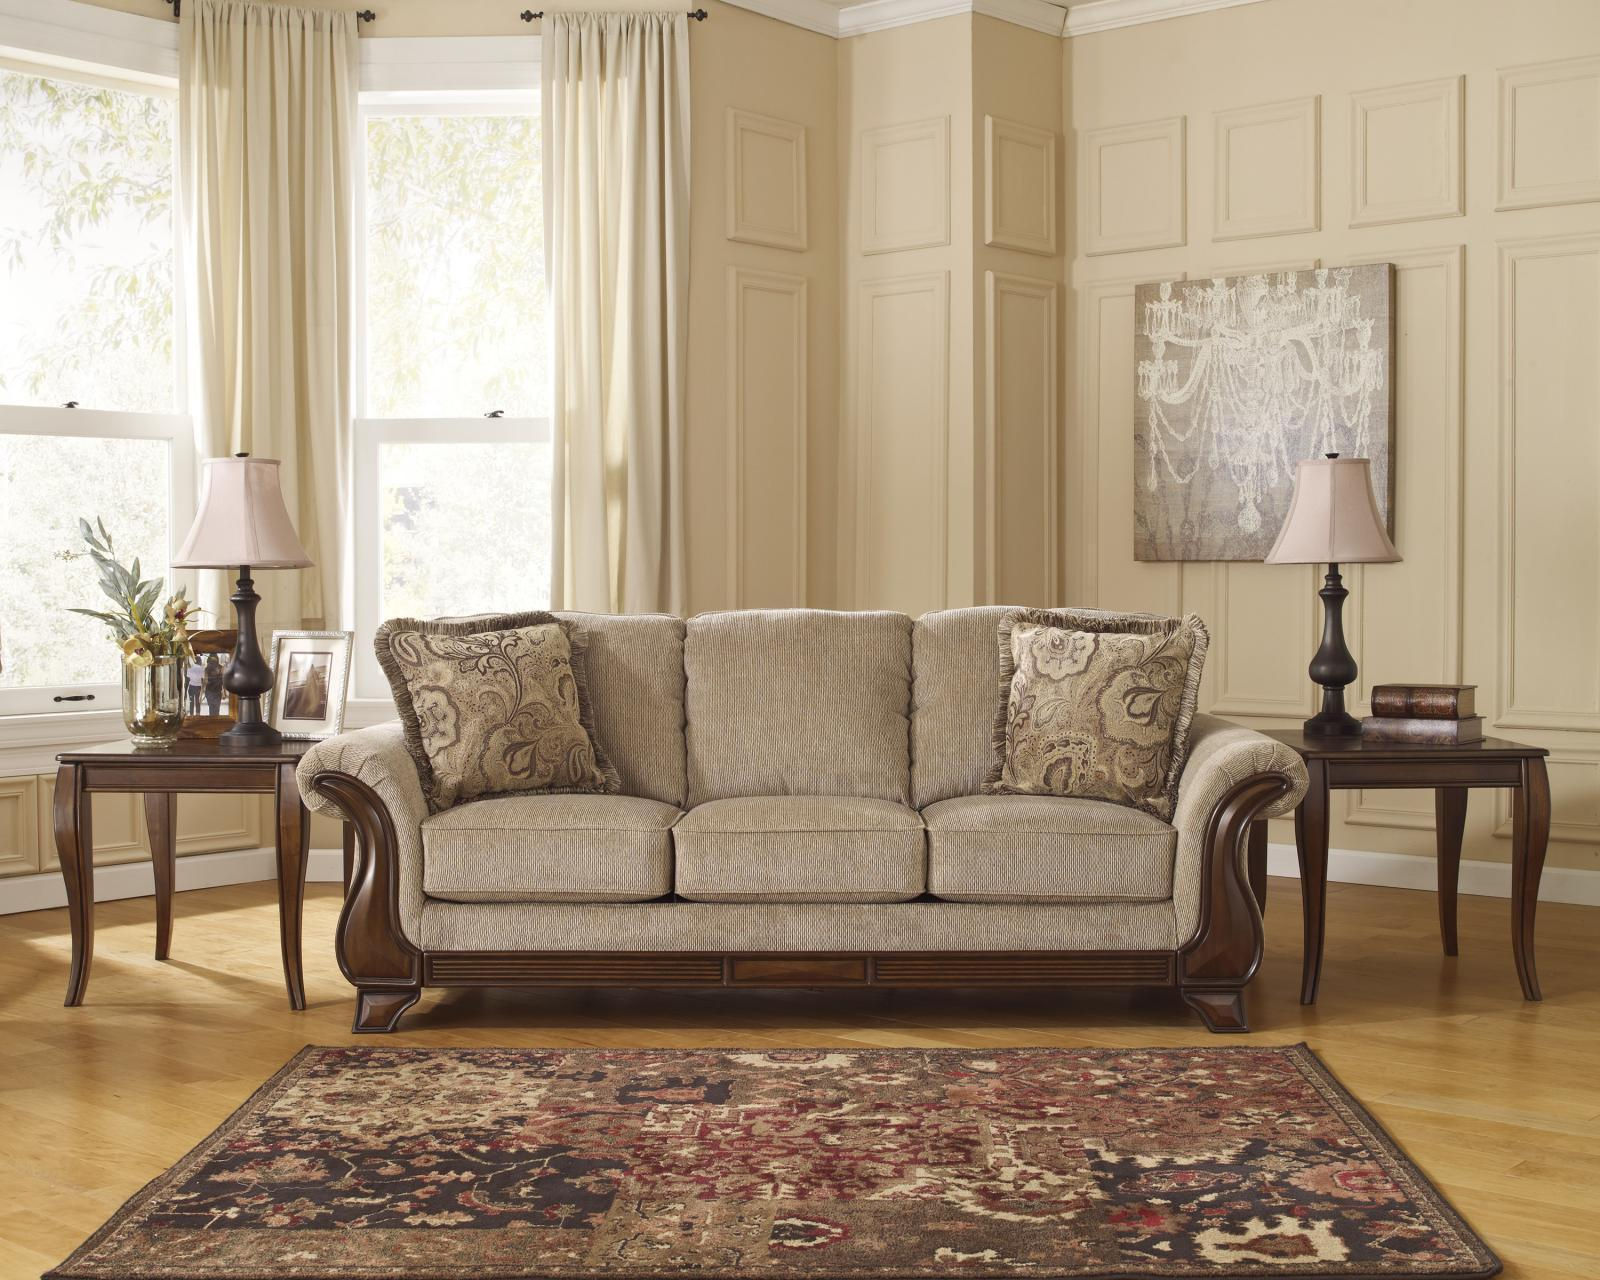 Ashley Lanett Living Room Set 3pcs in Barley Upholstery Fabric Traditional